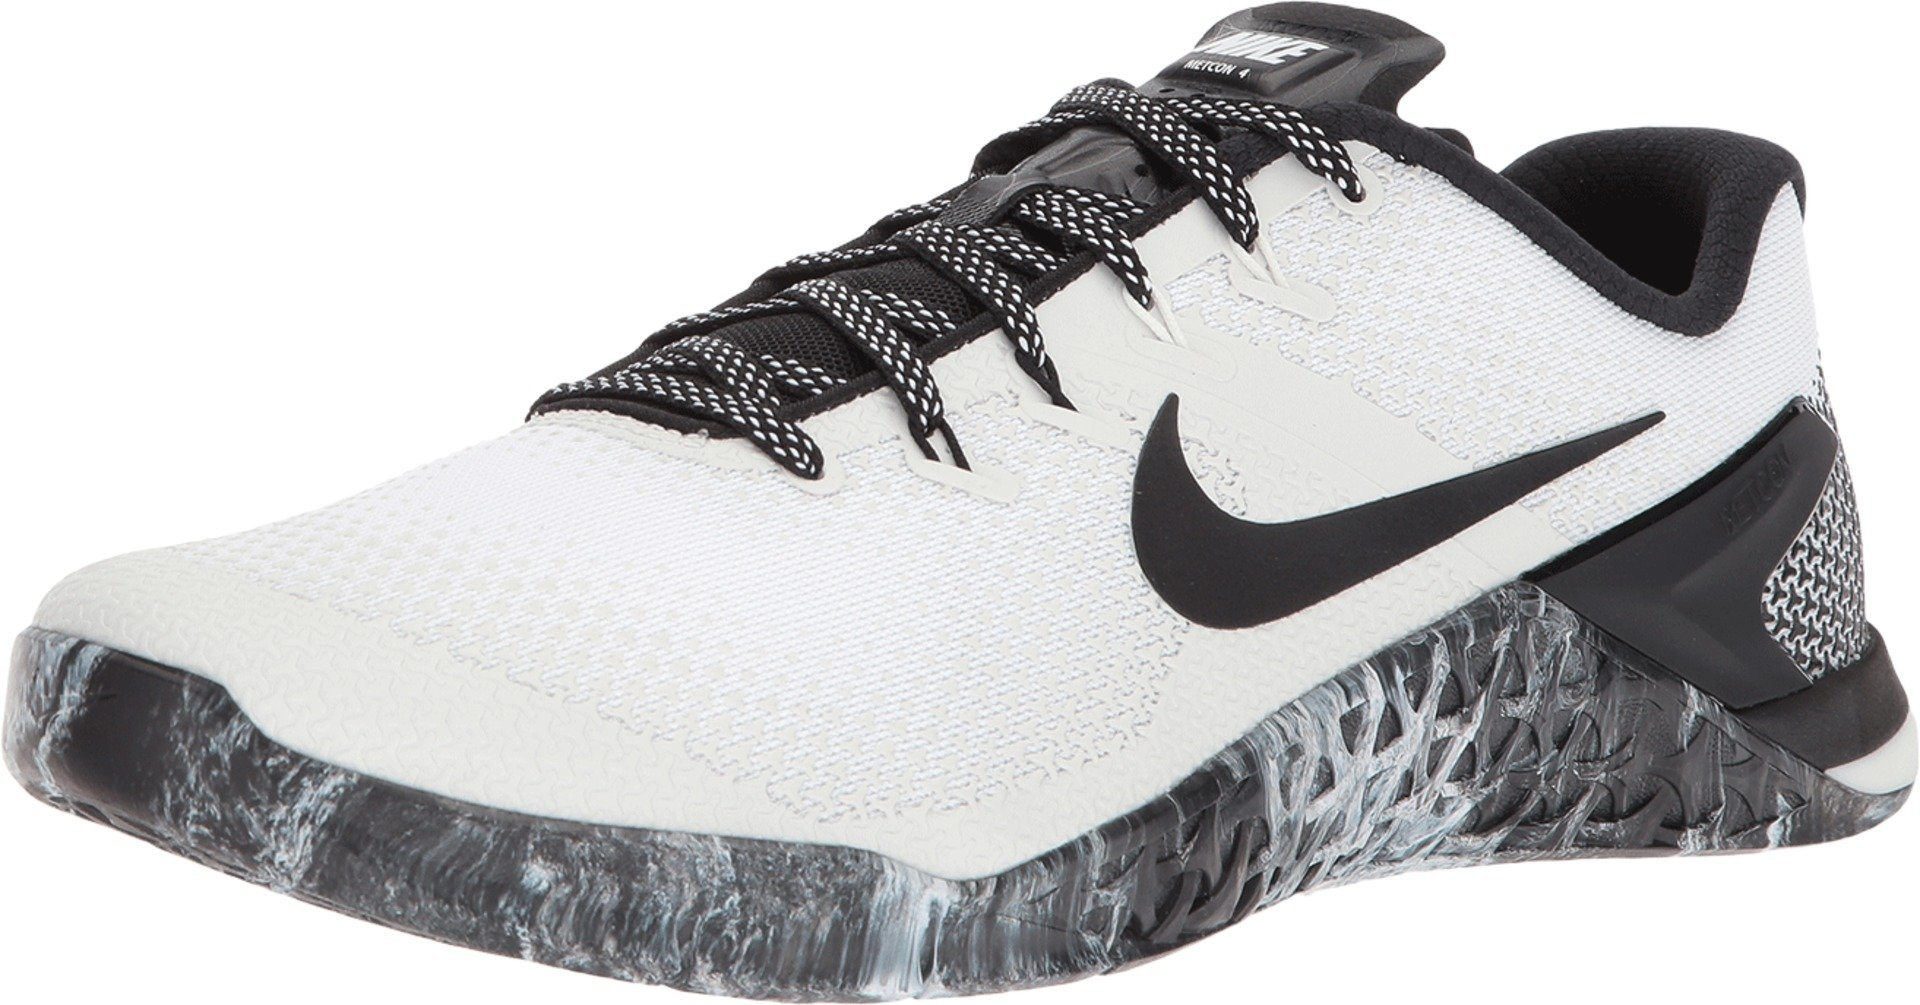 5f3daf456ca78 Nike Men's Metcon 4 Training Shoes (9.5, White/Black-M)